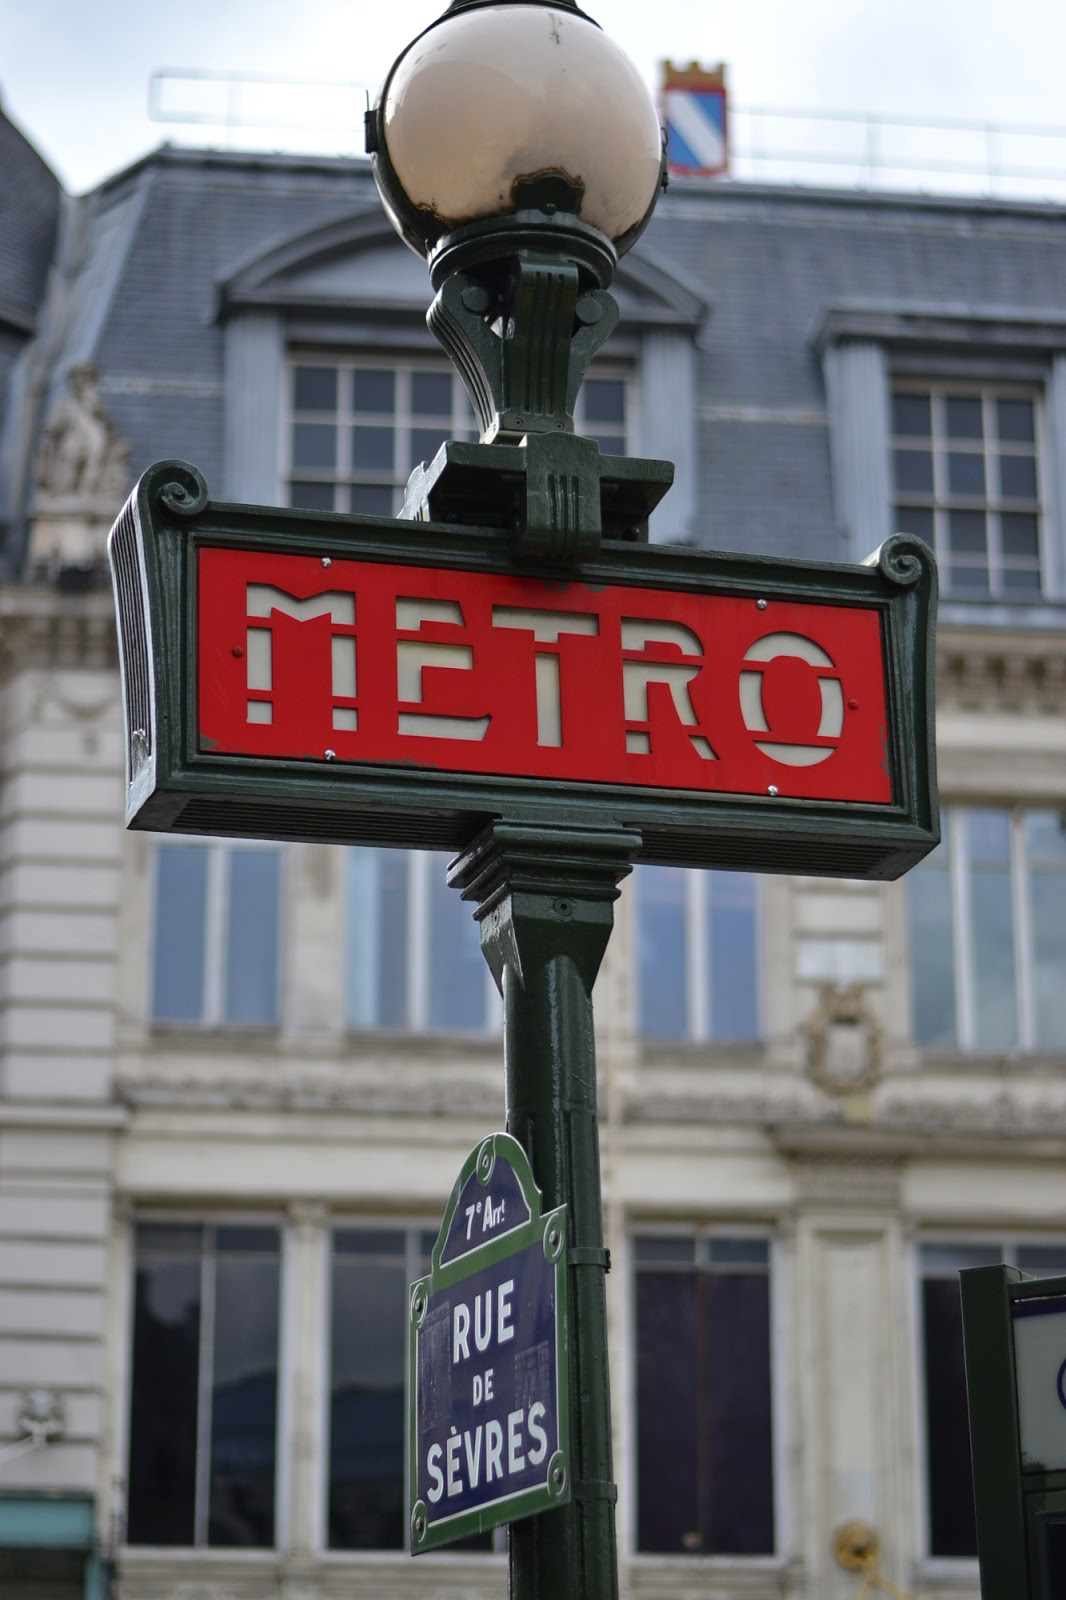 Paris Iconic Metro sign